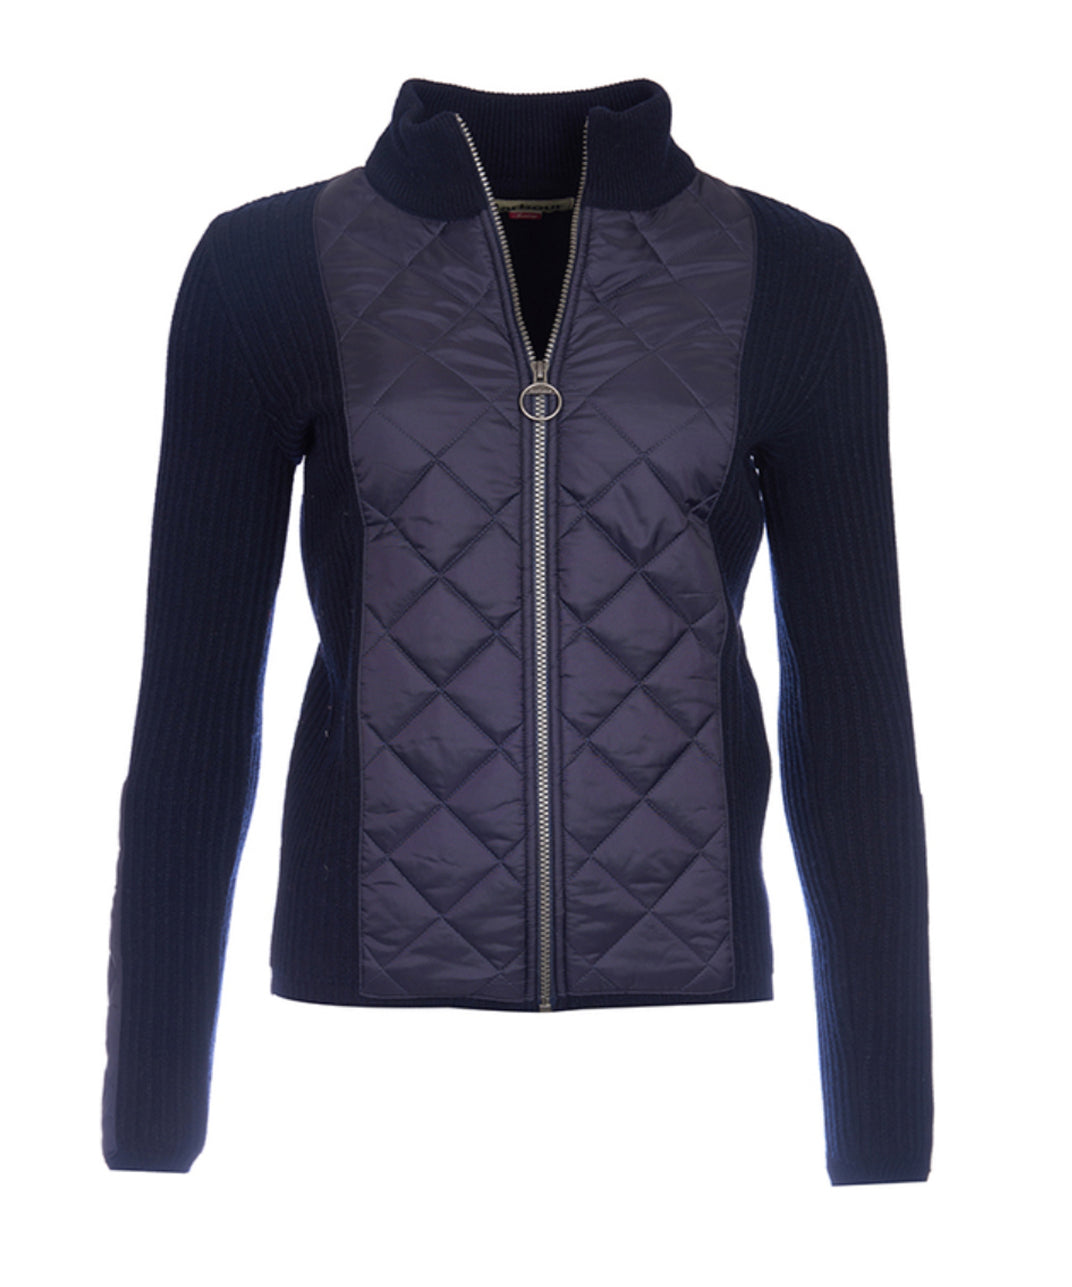 Barbour Sporting Zip Knit Jacket - SALE - North Shore Saddlery